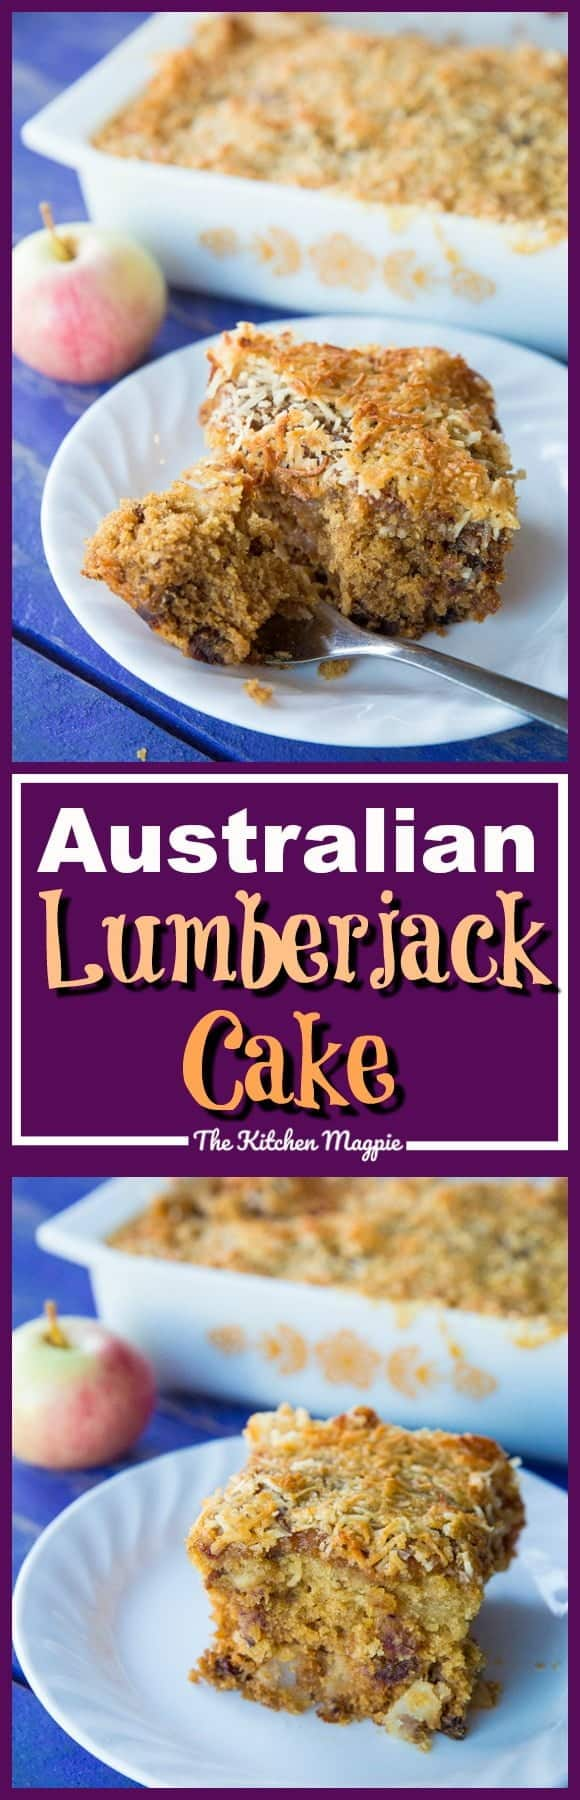 Australian Lumberjack Cake! This rich, moist cake is loaded with dates & apples and is honestly unlike any other cake you have ever tried! Recipe from @kitchemagpie. #dessert #cake #Australian #apples #recipe